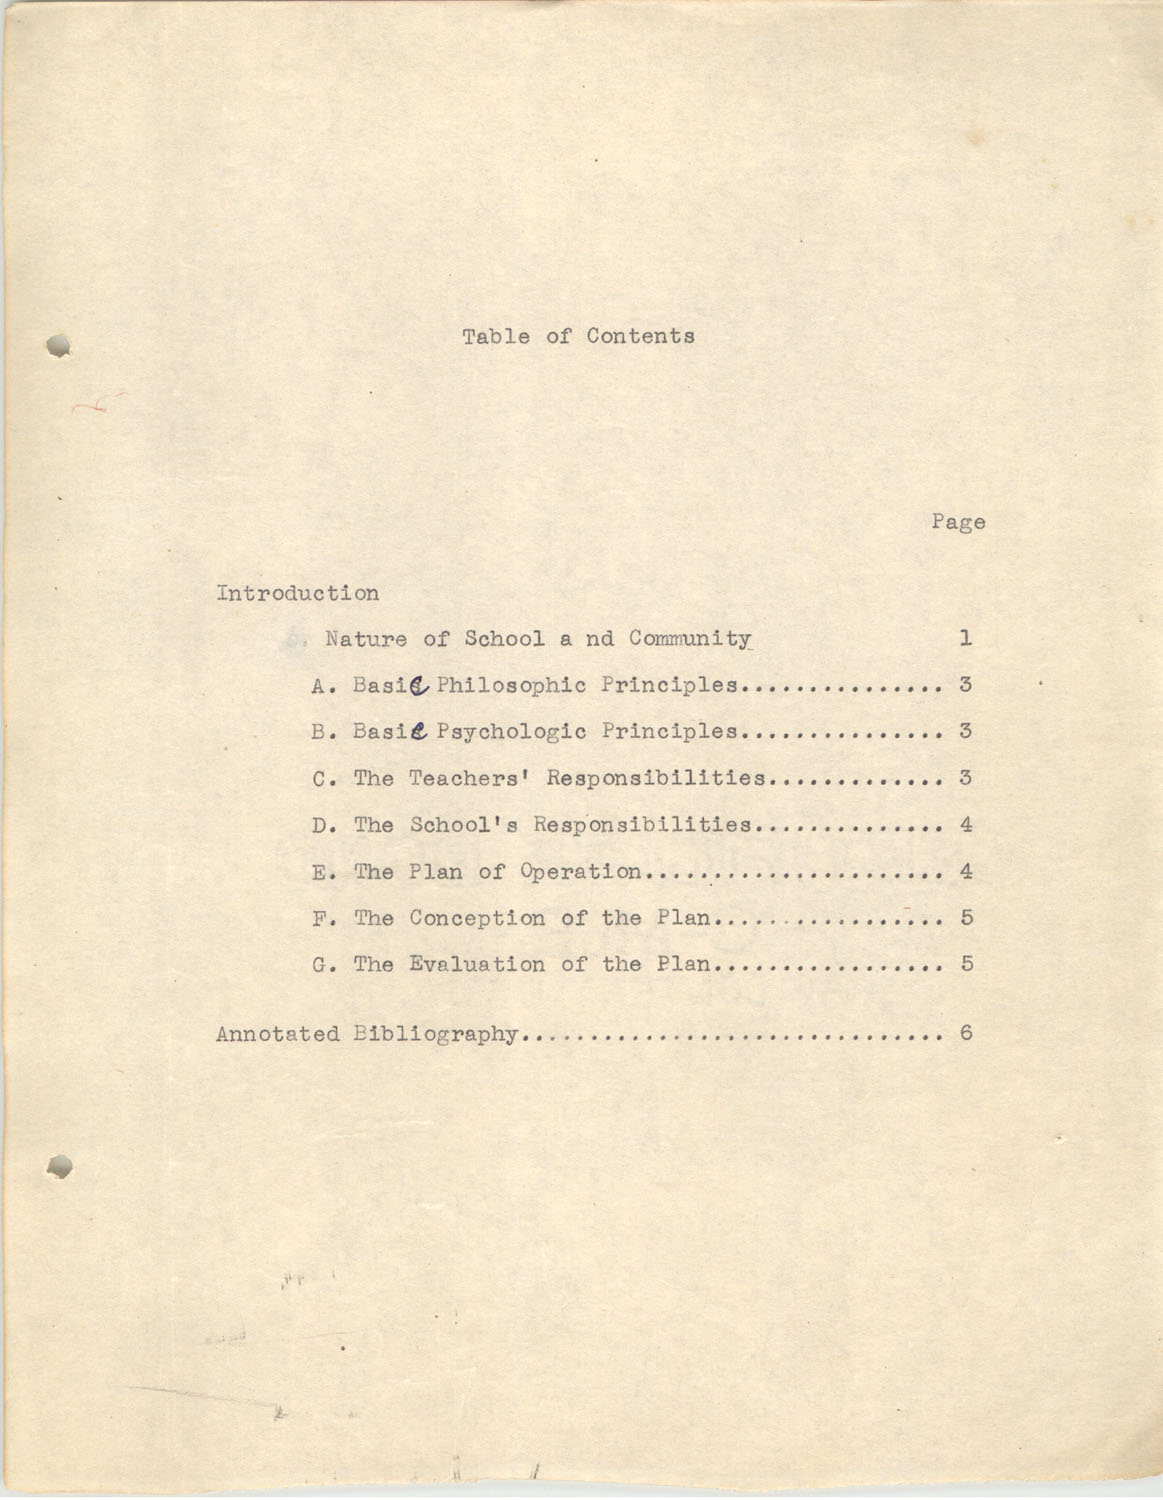 The Testing Program, 1945, Table of Contents